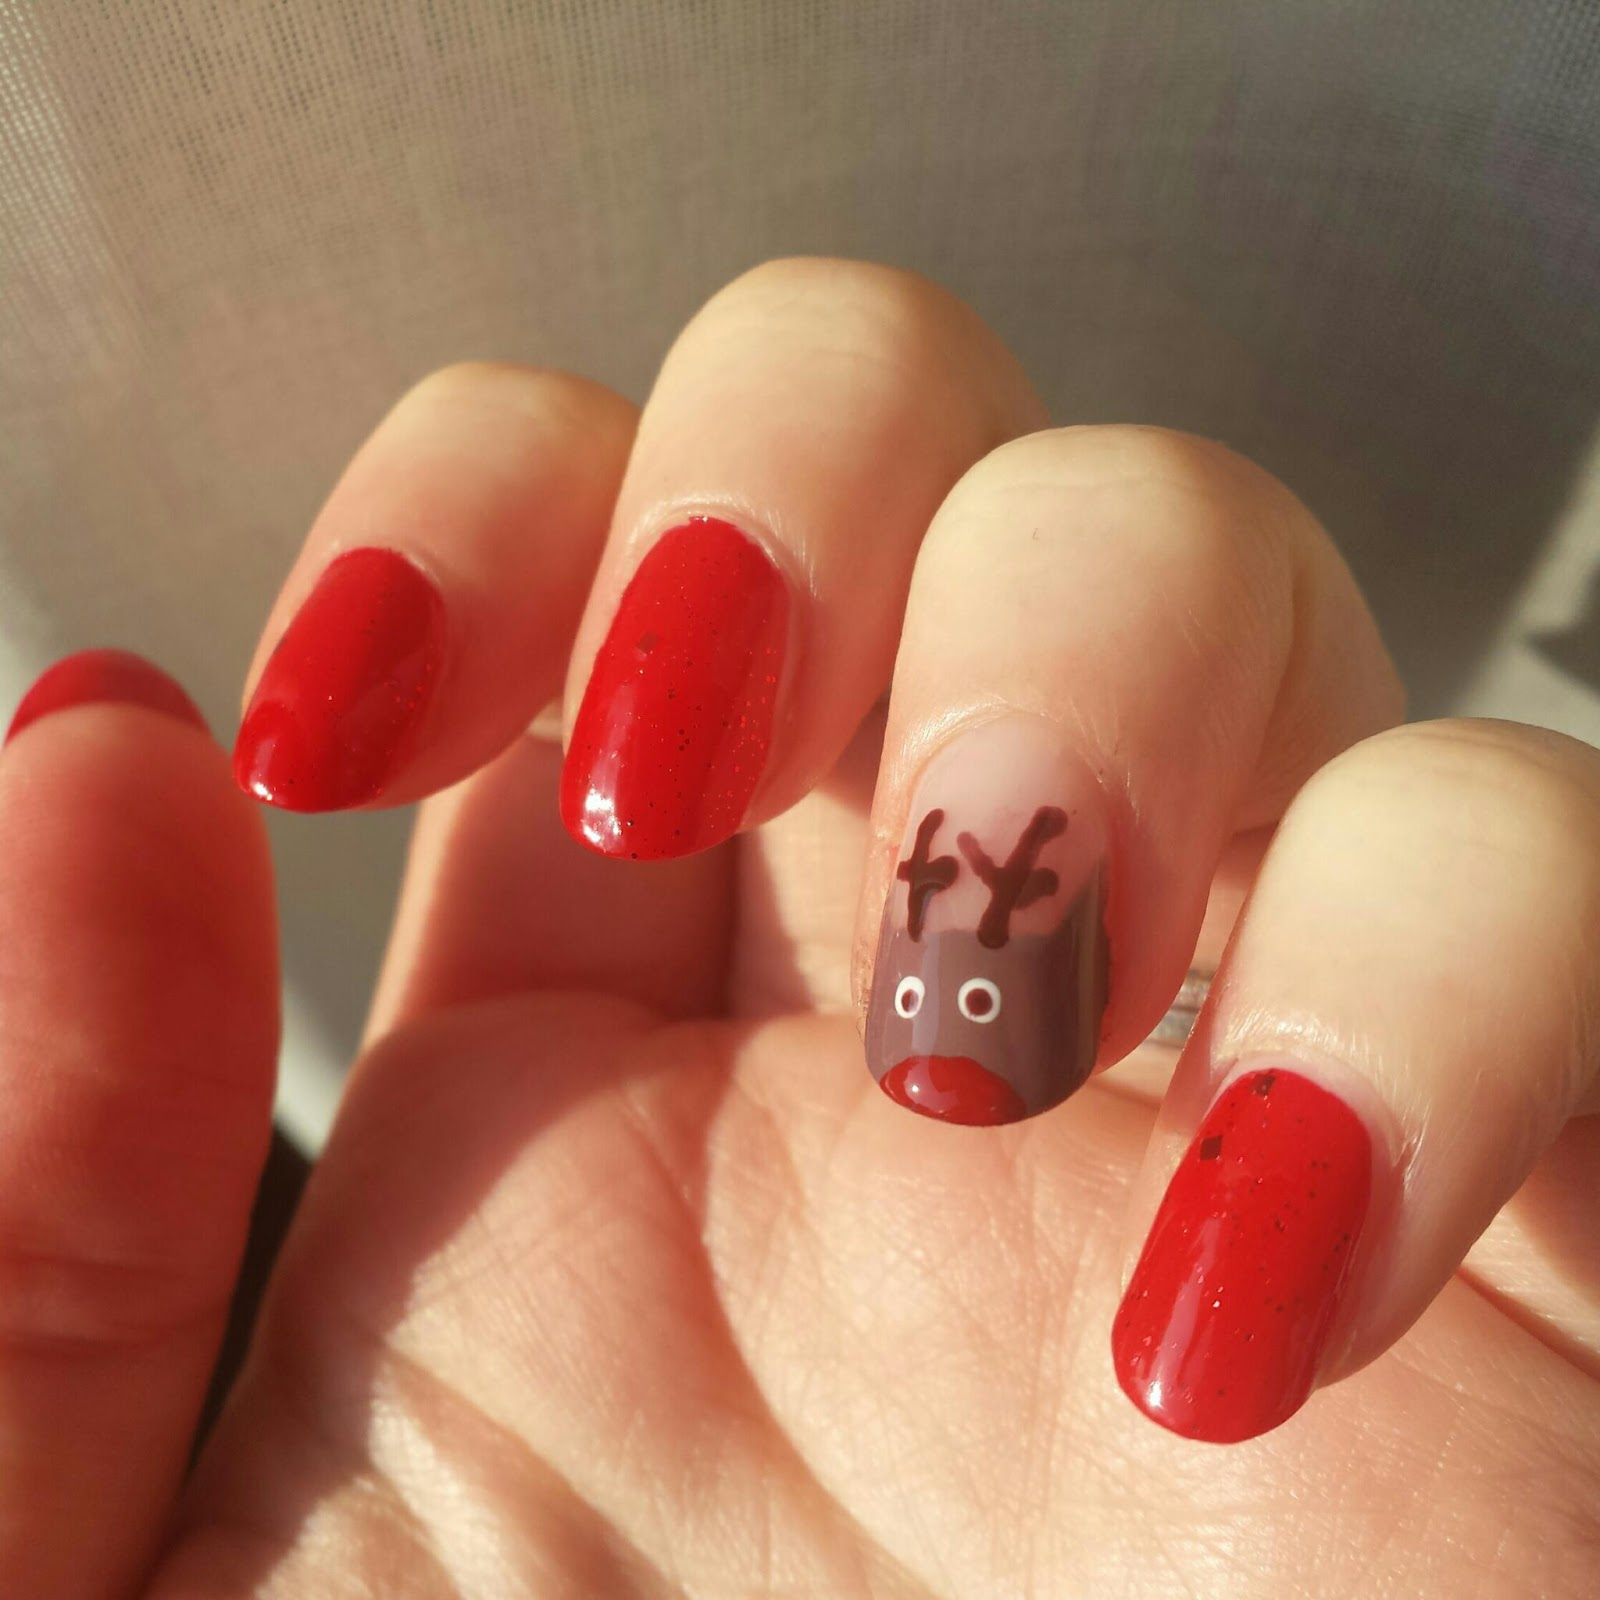 The world of Claire: Nails of the Month #6 ft. The MakeUp World of a ...